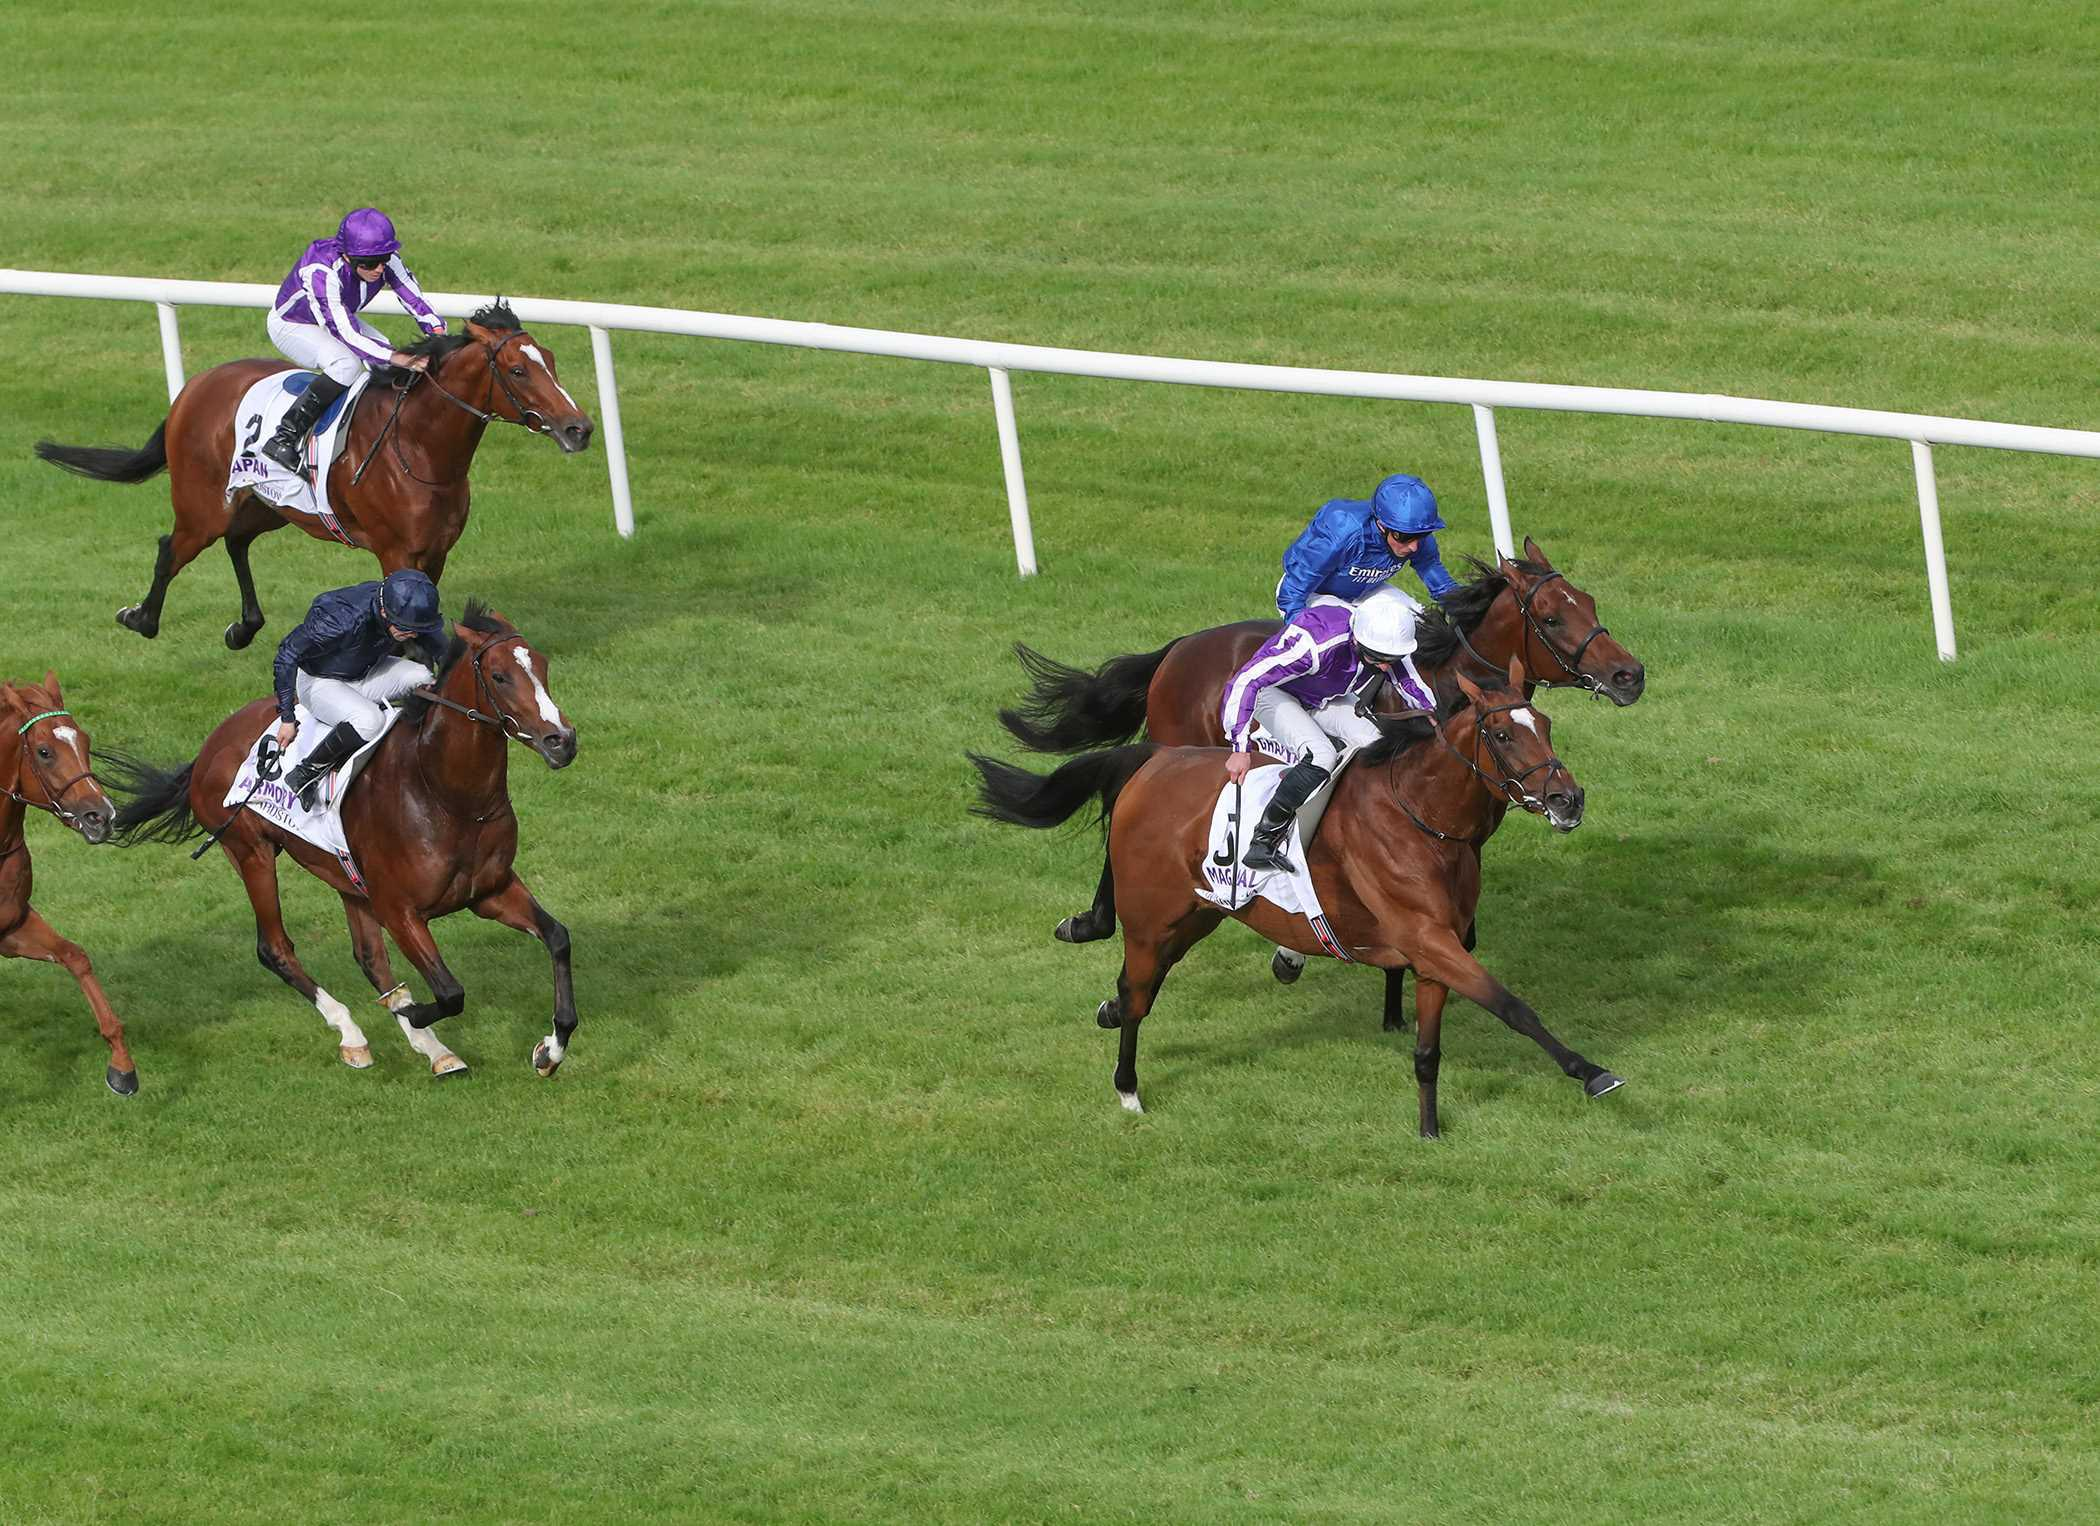 LEOPARDSTOWN SATURDAY: It's a Magical day again at Leopardstown